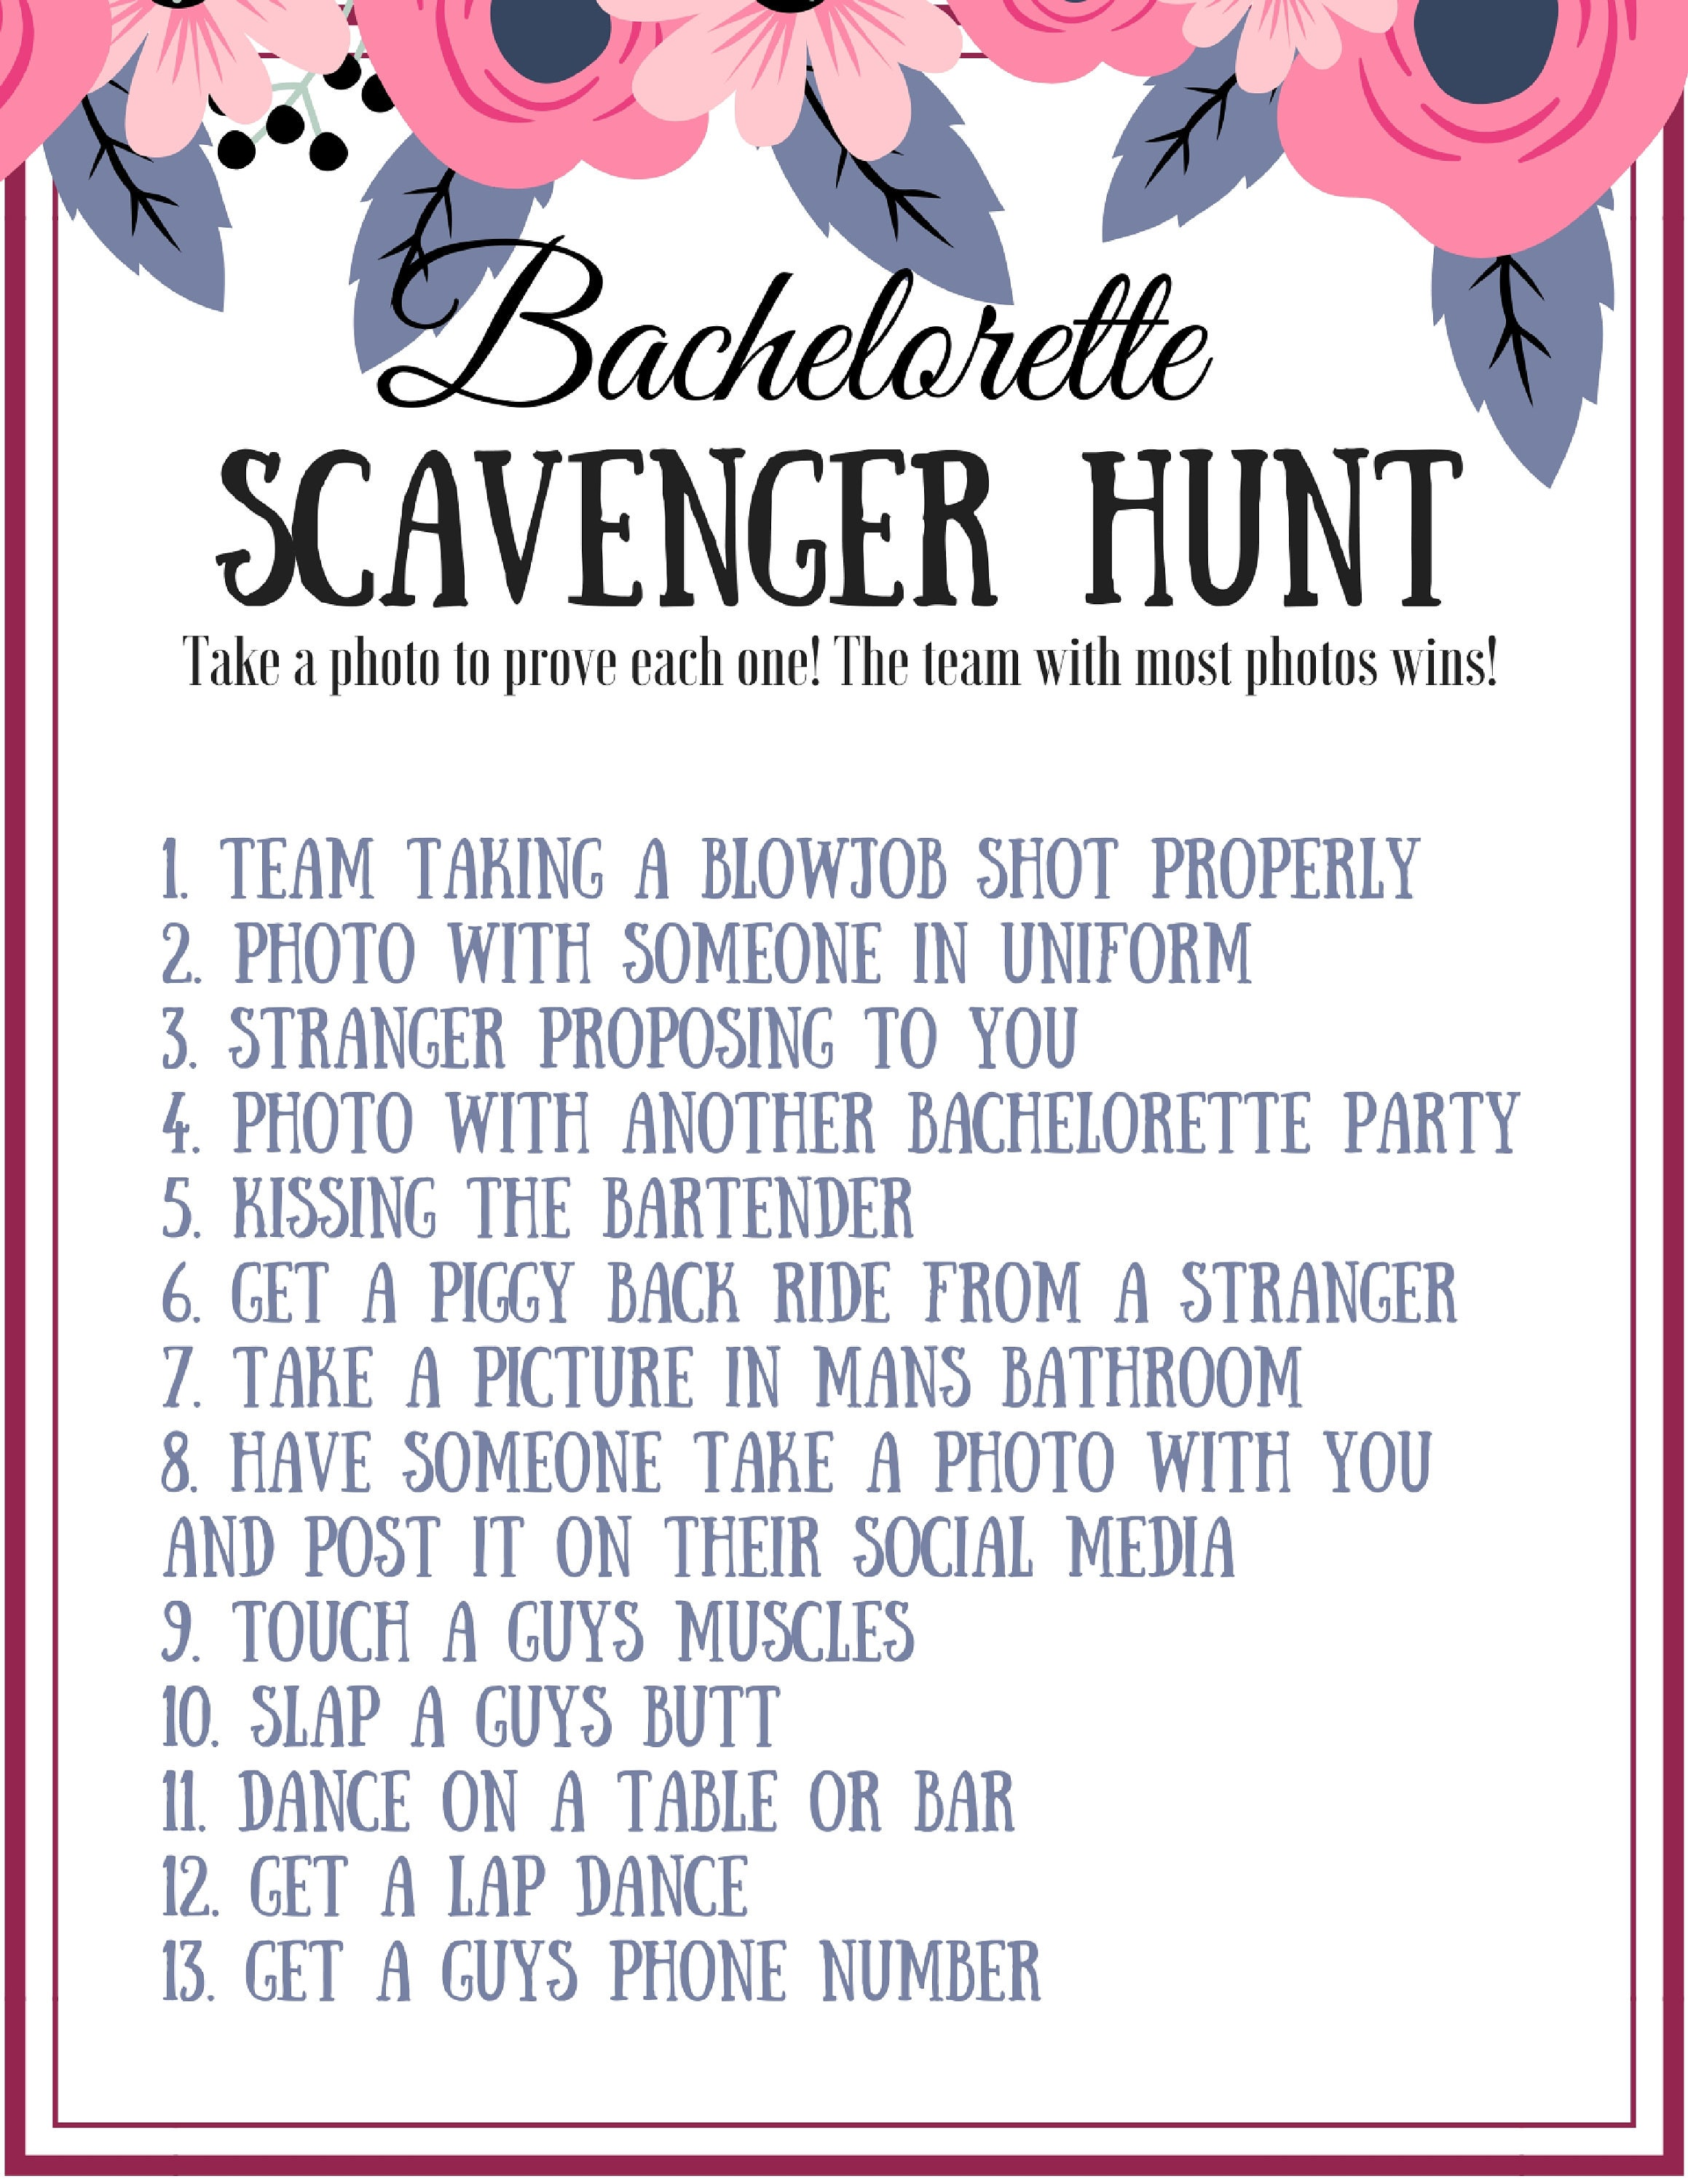 Bewitching image with regard to bachelorette scavenger hunt printable